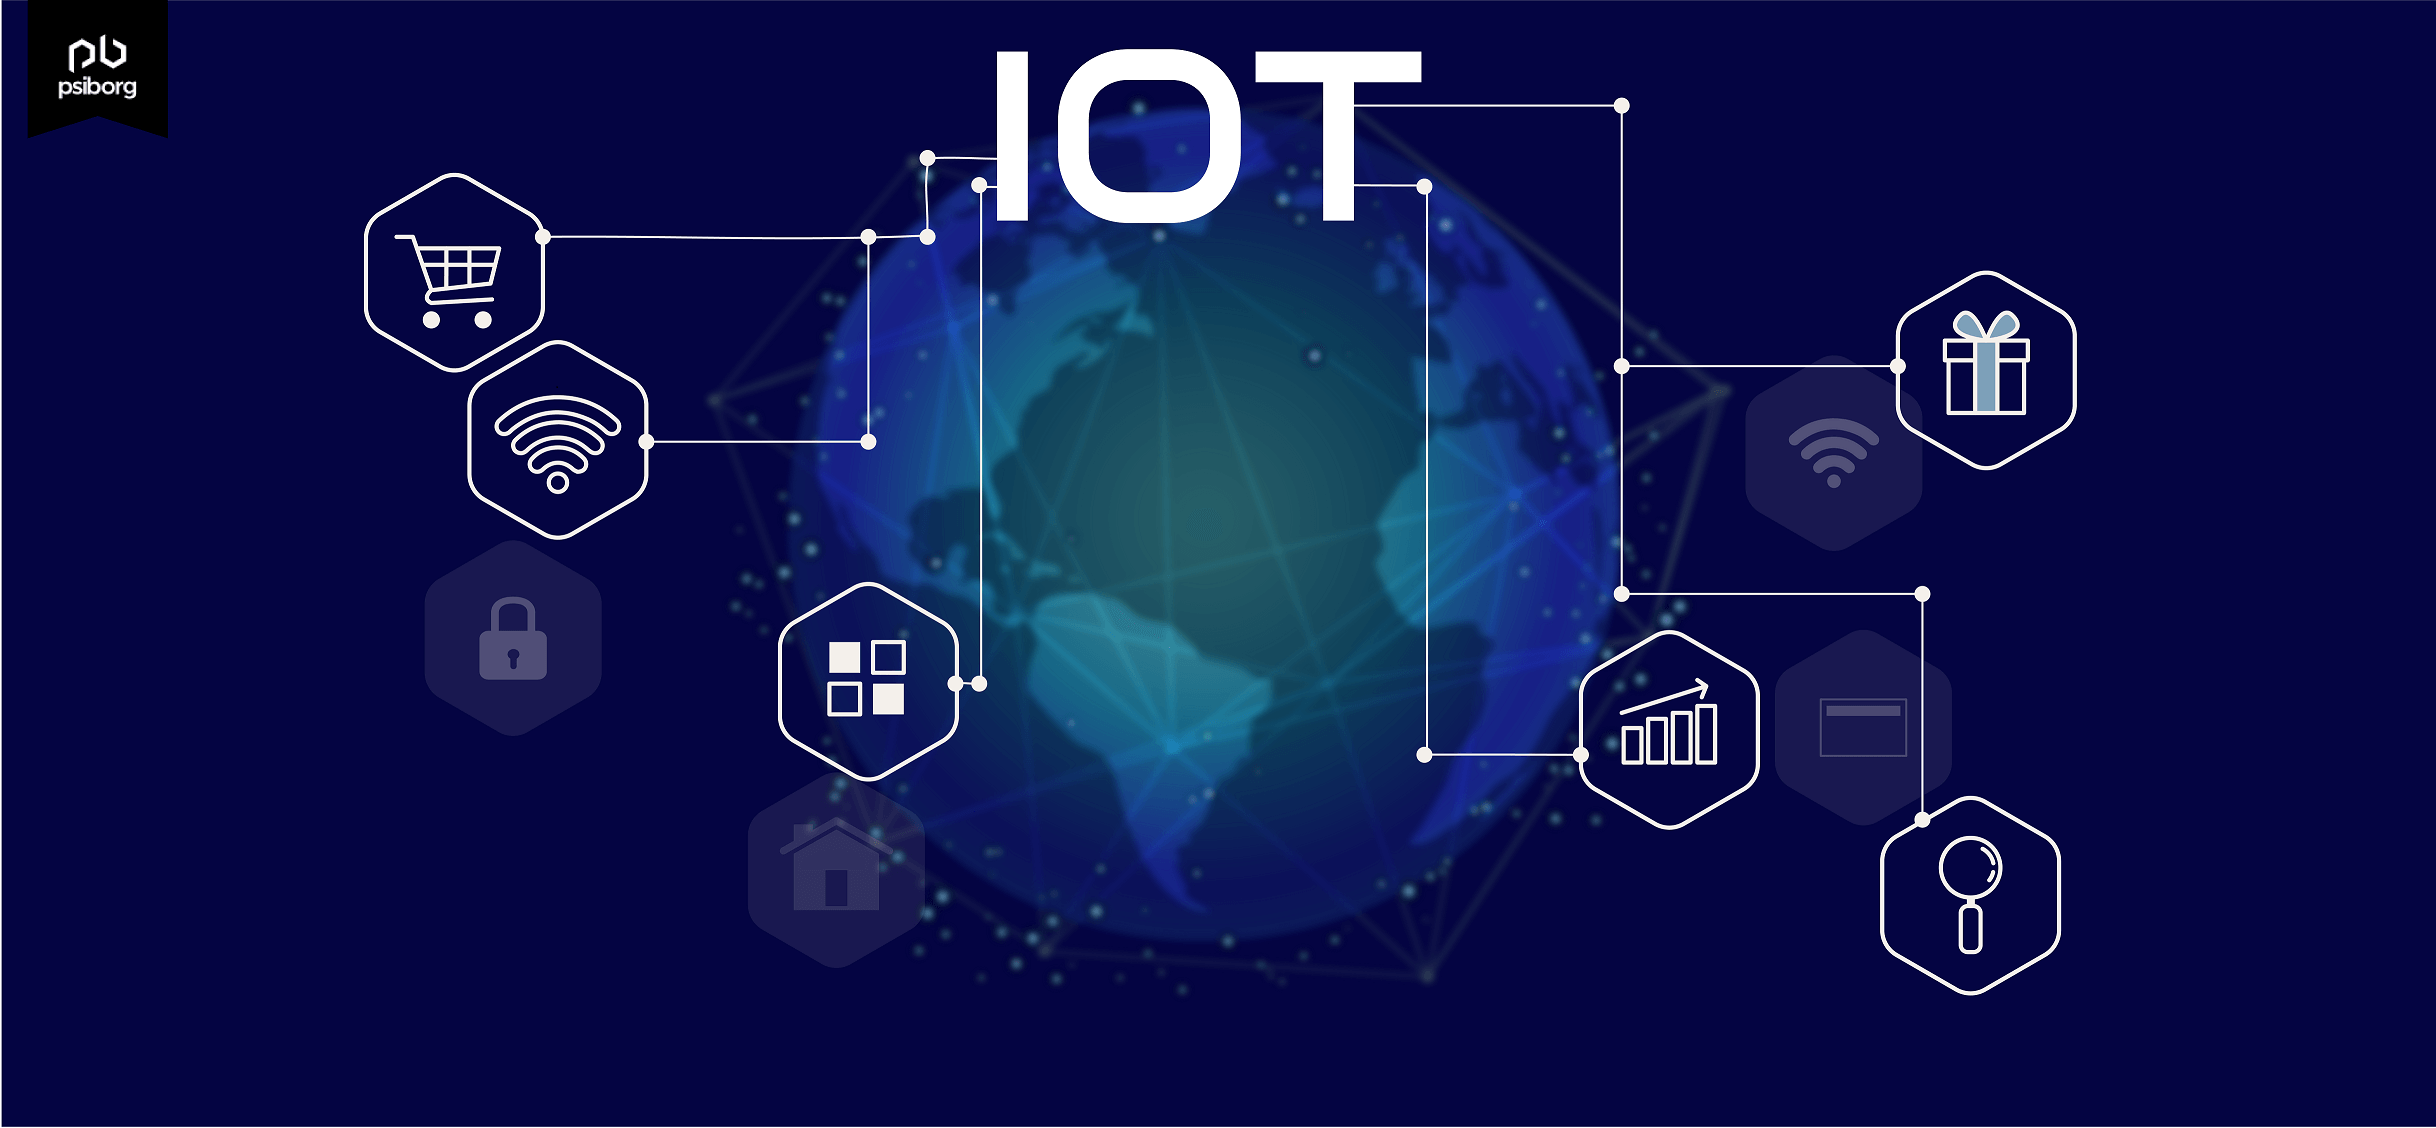 IOT changing businesses and connecting our world is why iot is much needed today